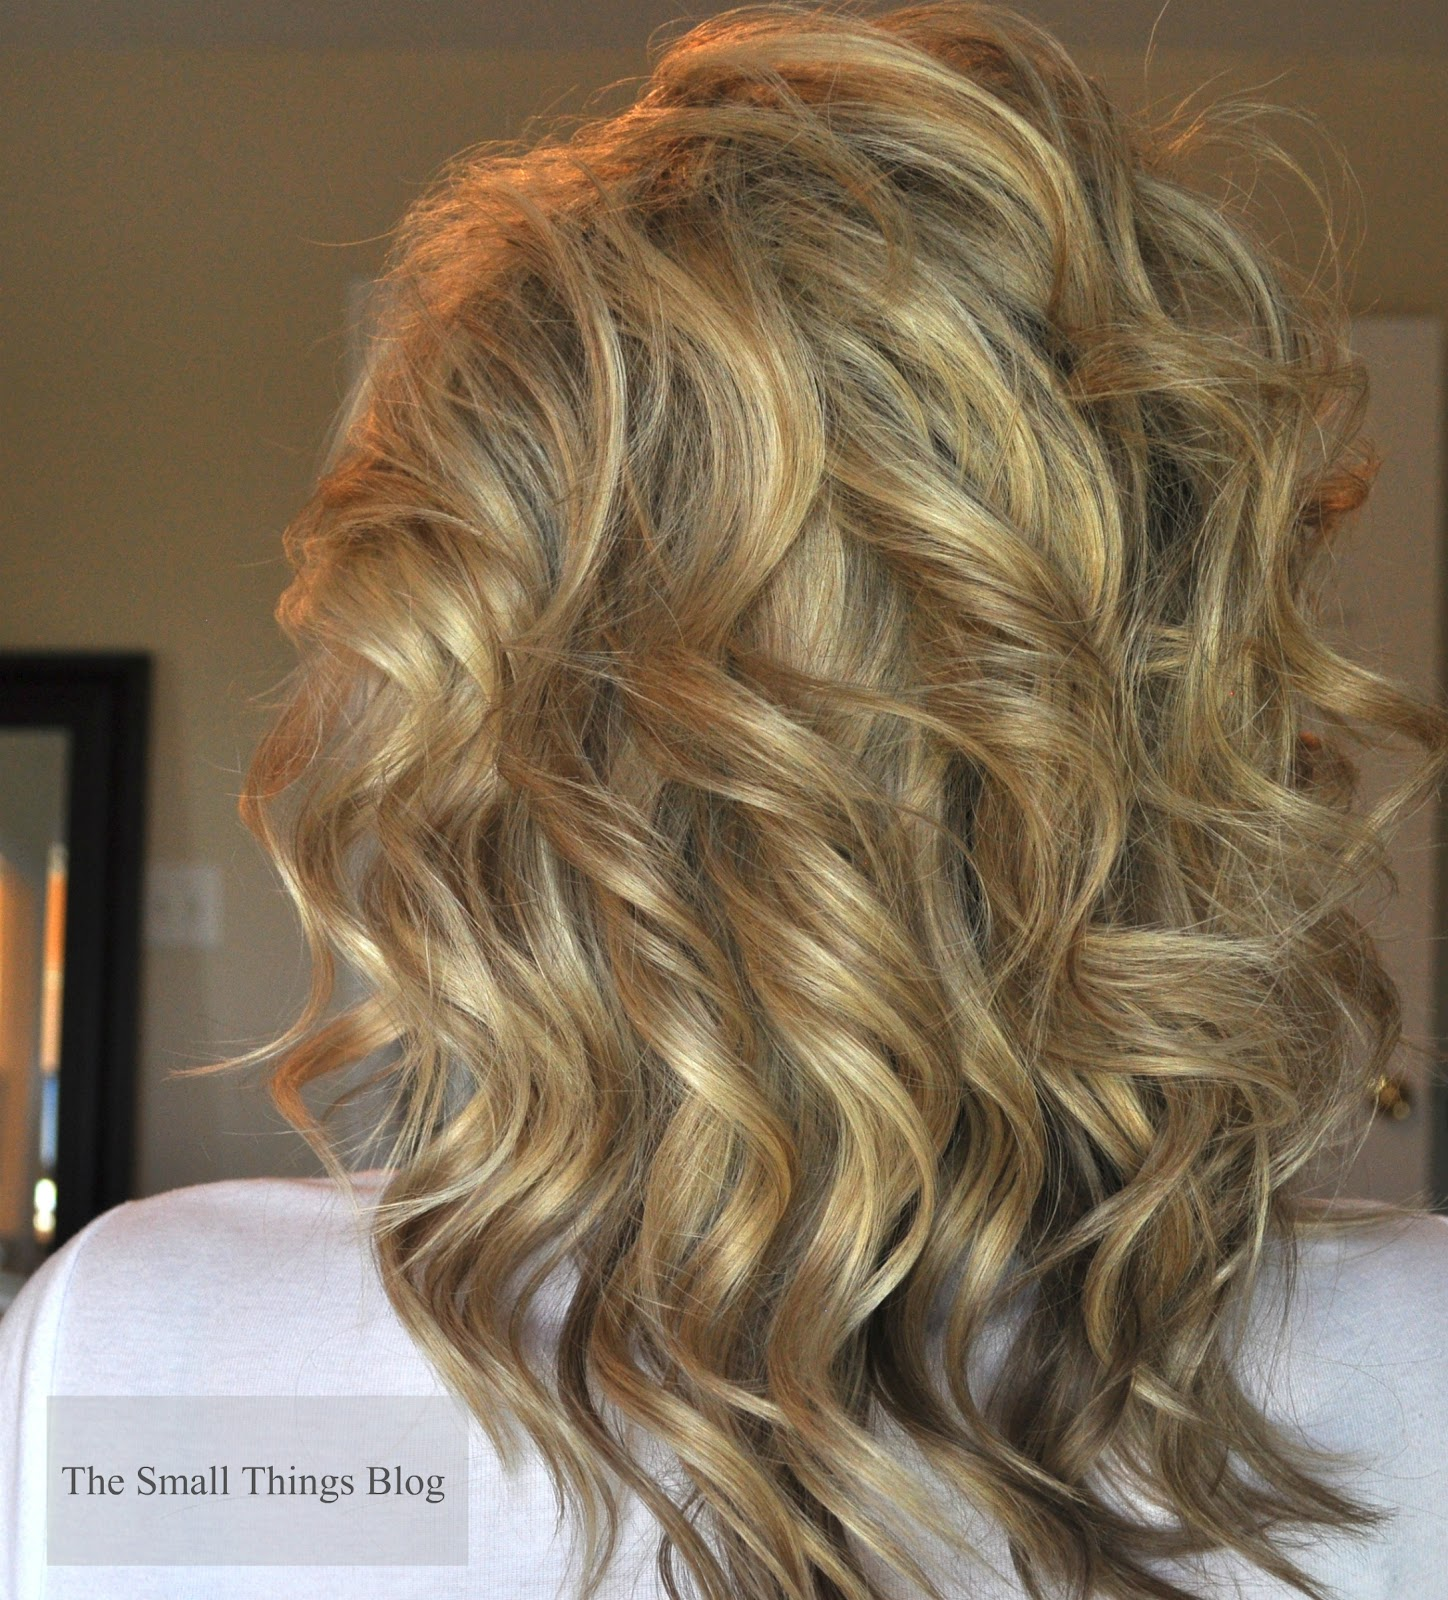 How To Use A Curling Wand The Small Things Blog